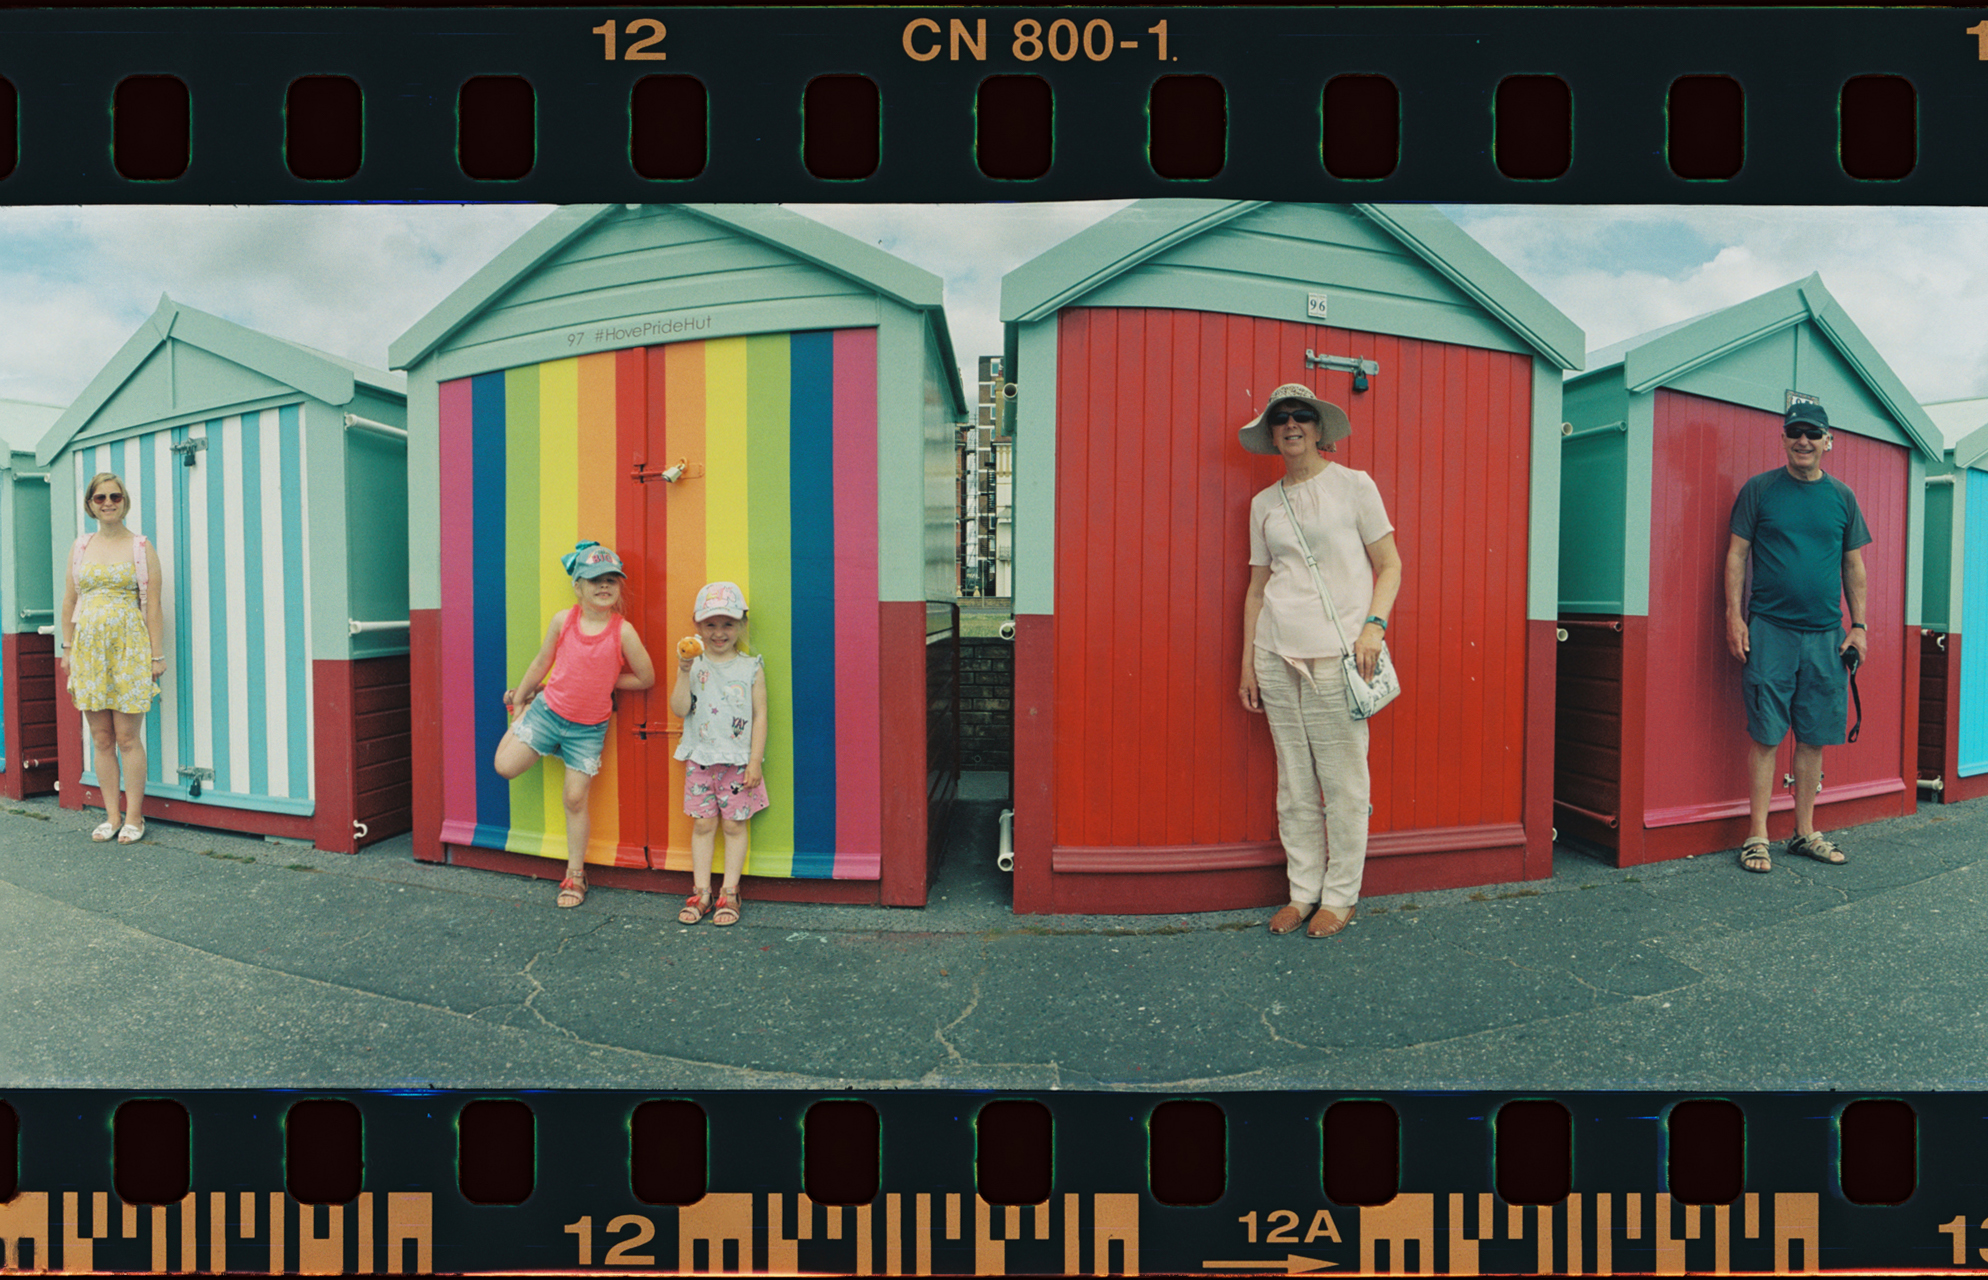 Here's my family against beach huts in brighton.   kind of fun shot!